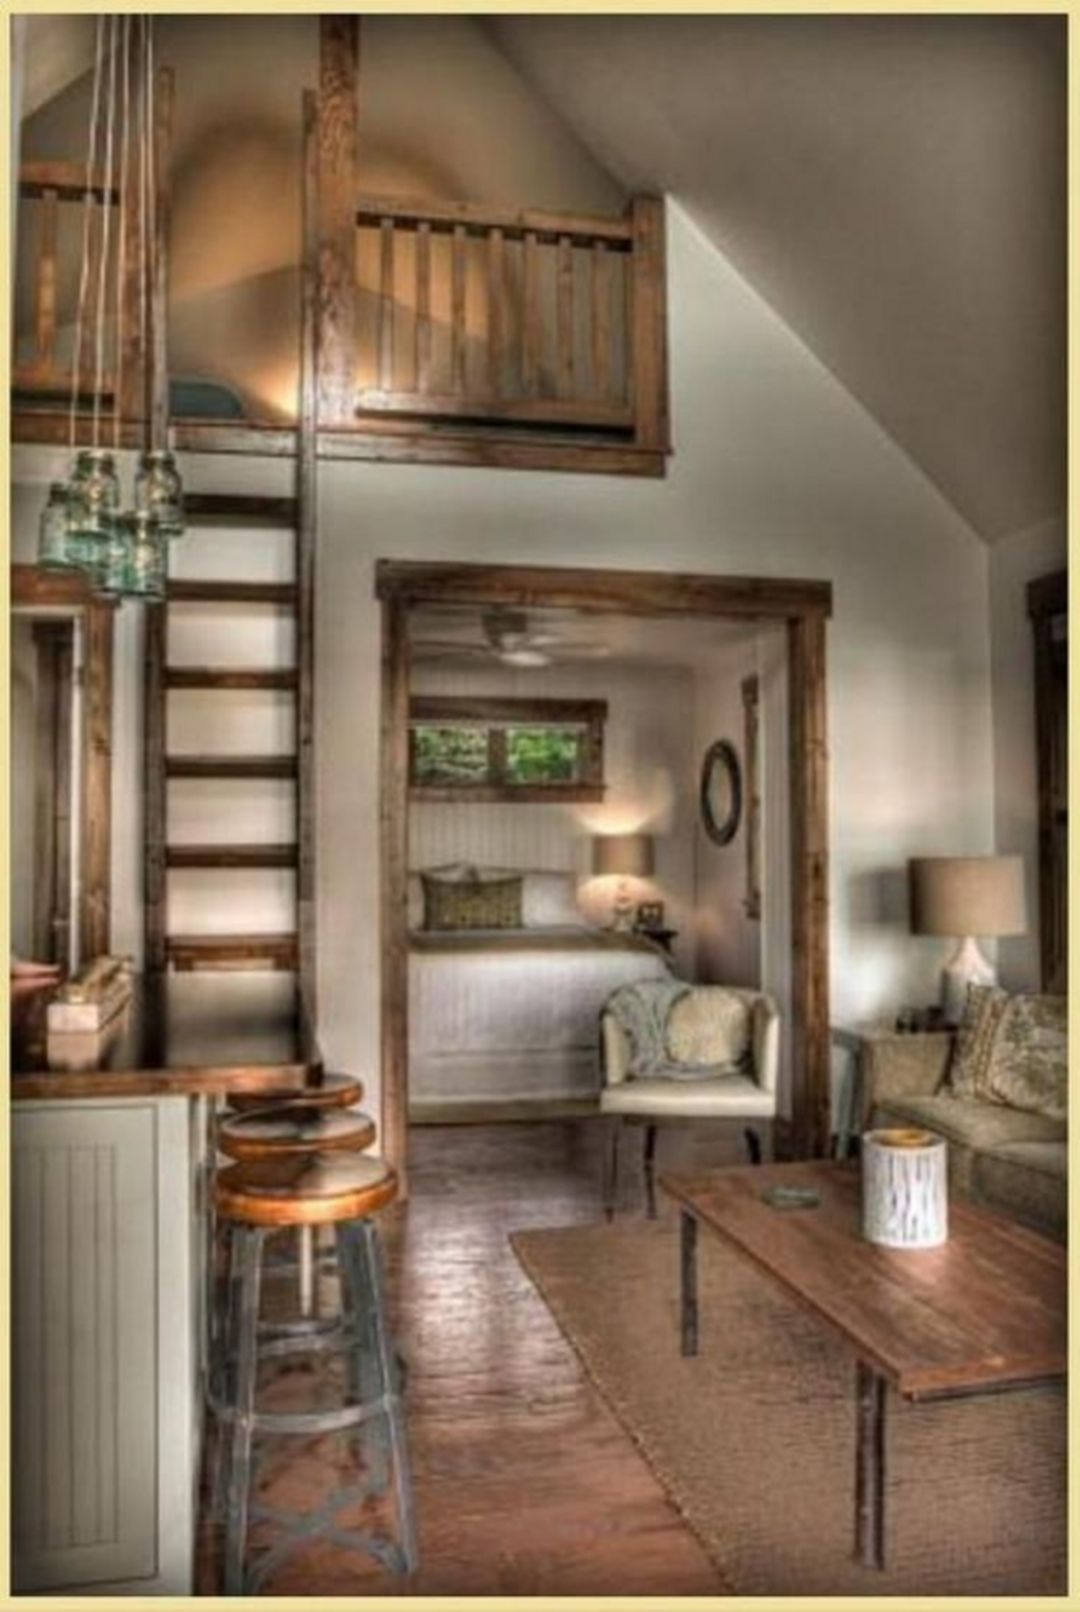 25 Interesting Small Home Decor Ideas You Must Have Tiny House